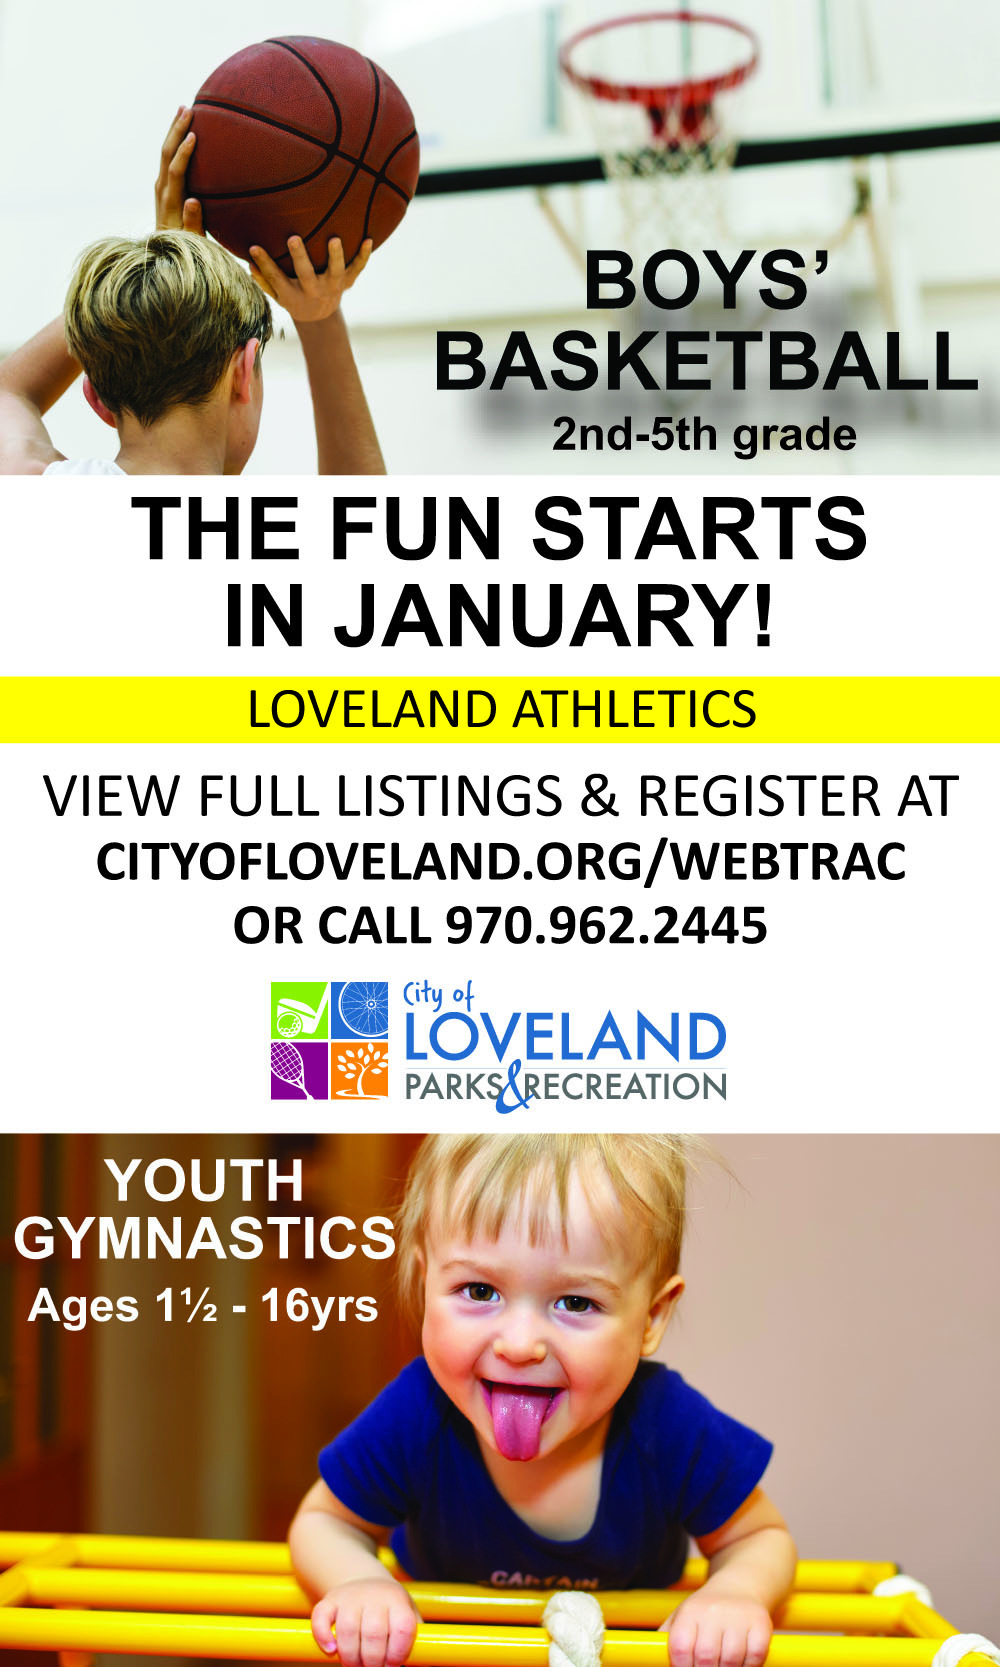 boys' basketball and youth gymnastics in Loveland